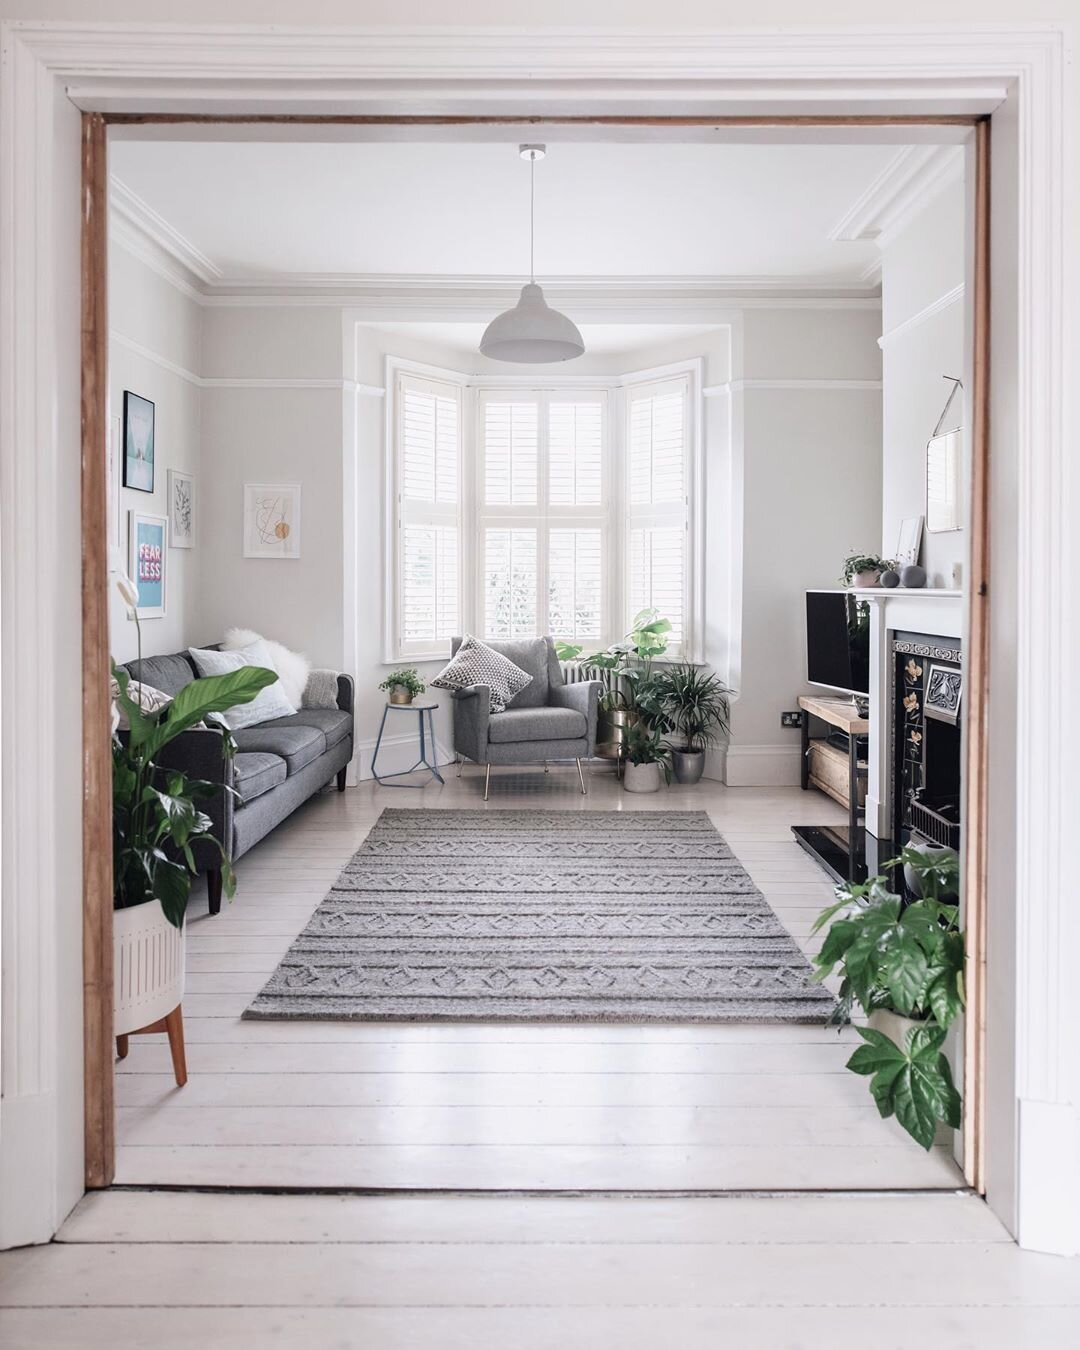 The pops of greenery has brought Hannah's space to life.  Source: @hannahargyle